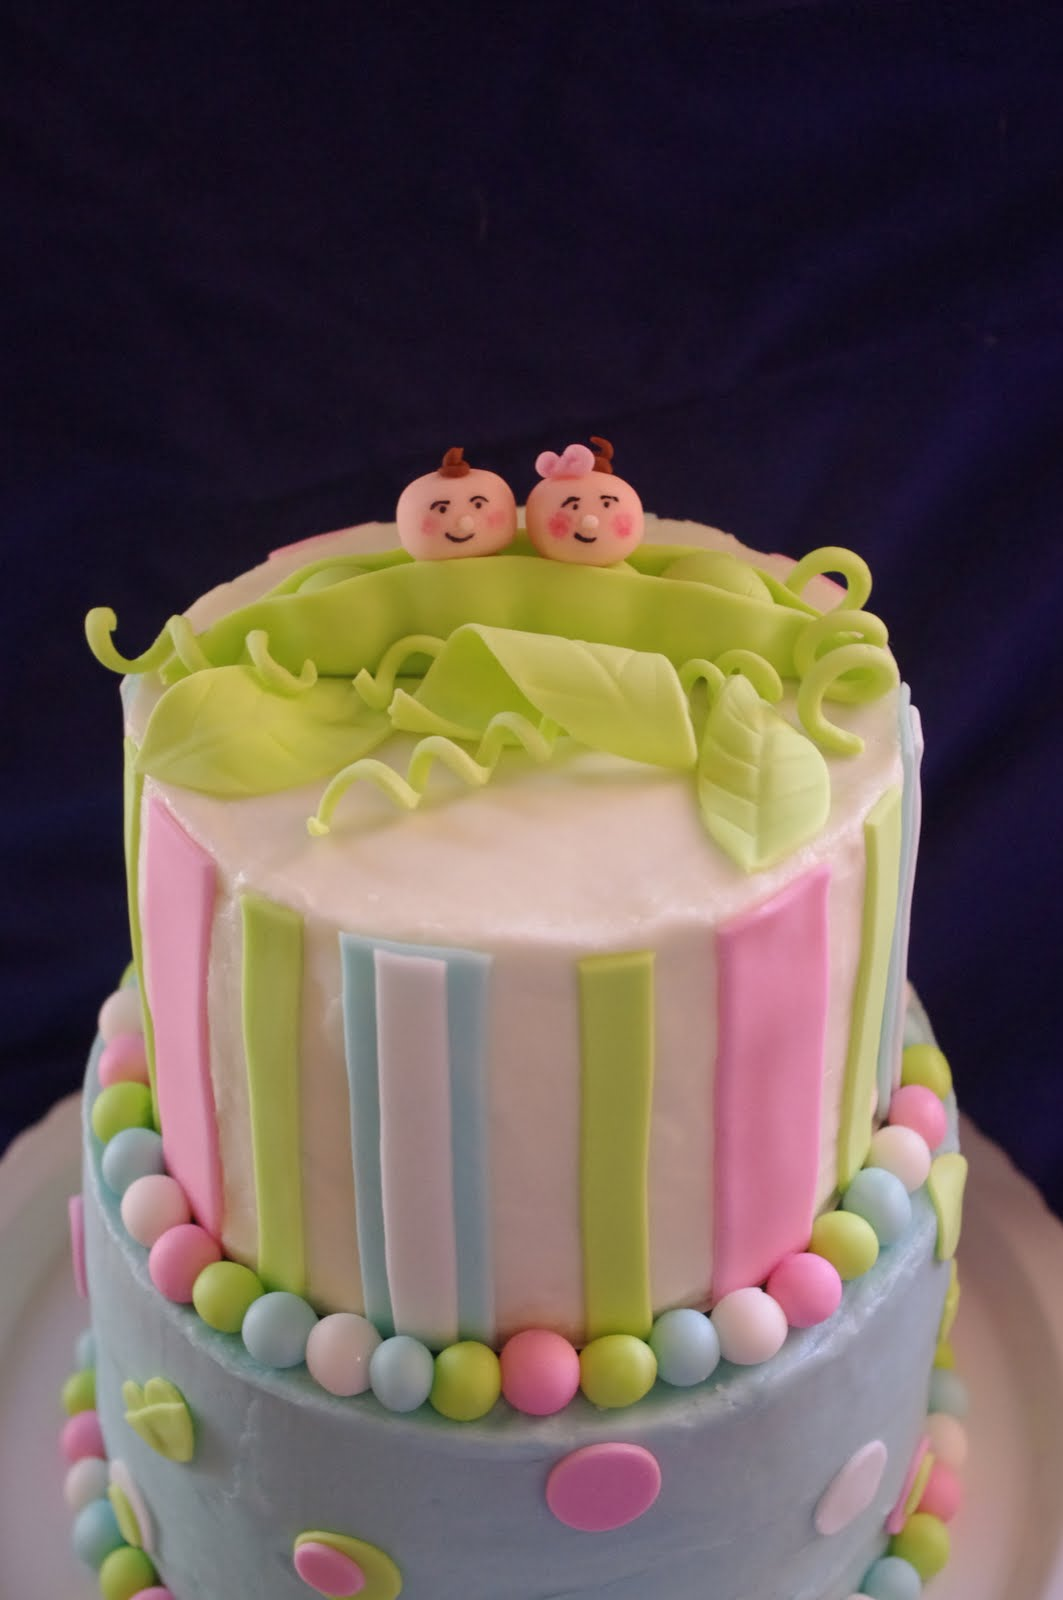 Marvelous Baby Shower Cake Twins Part - 5: Baby-shower-cakes-for-twins-boys-and-girls